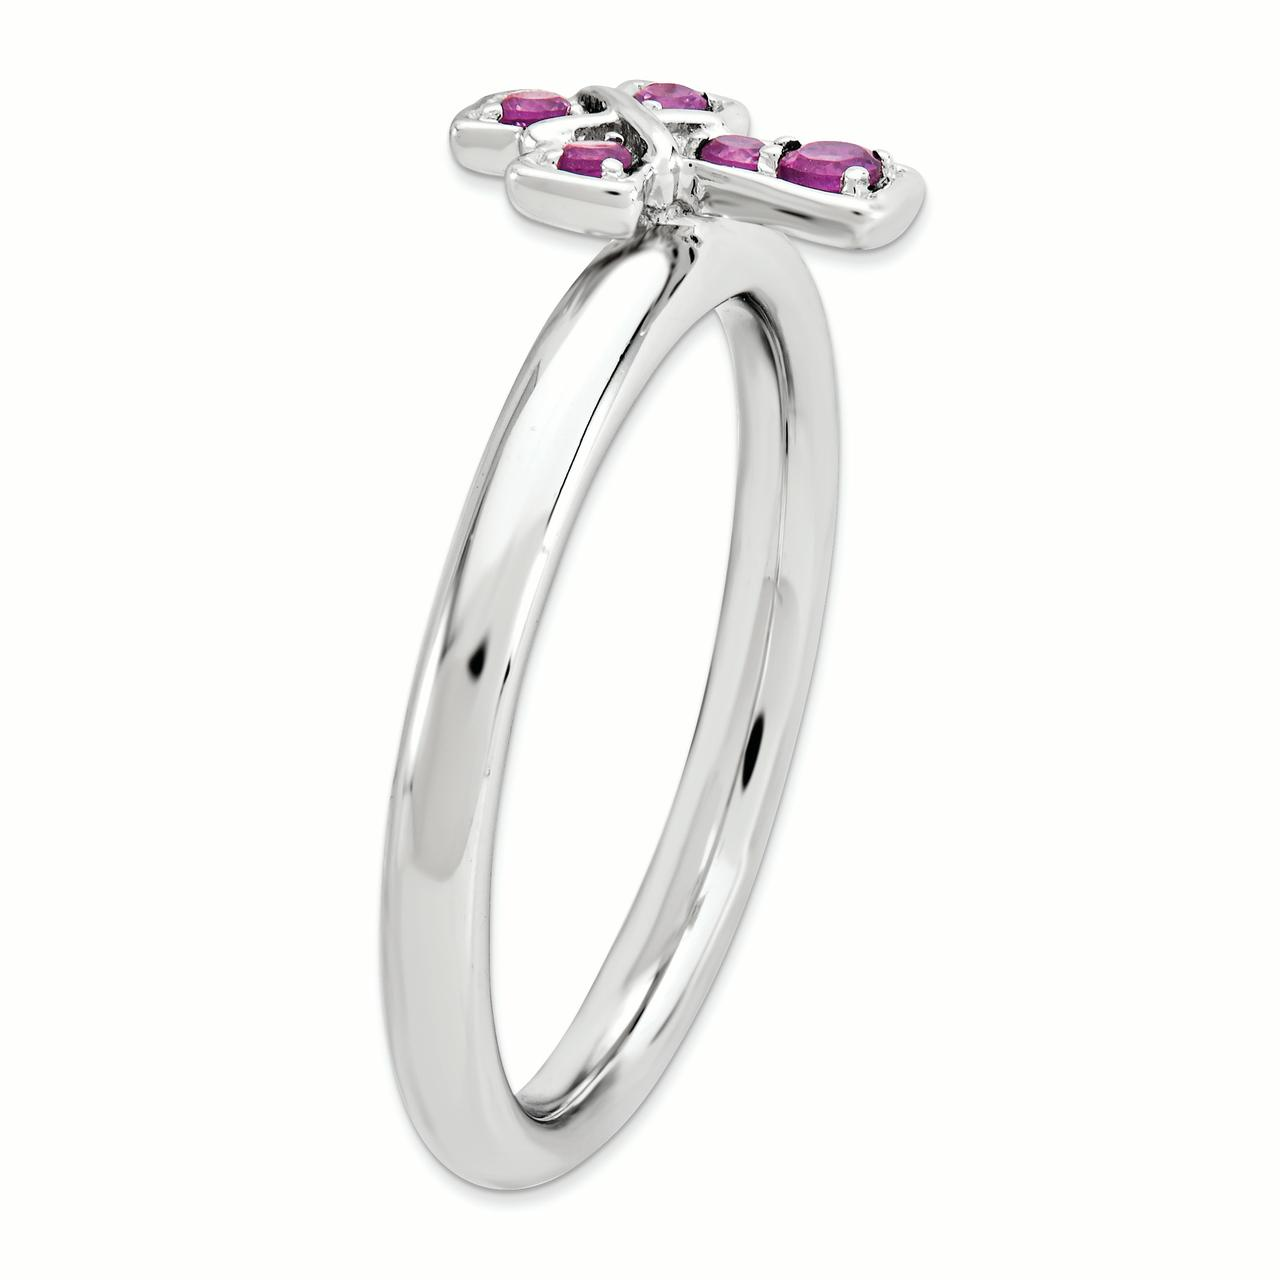 Sterling Silver Stackable Expressions Rhodium Rhodolite Garnet Cross Ring Size 6 - image 3 de 3